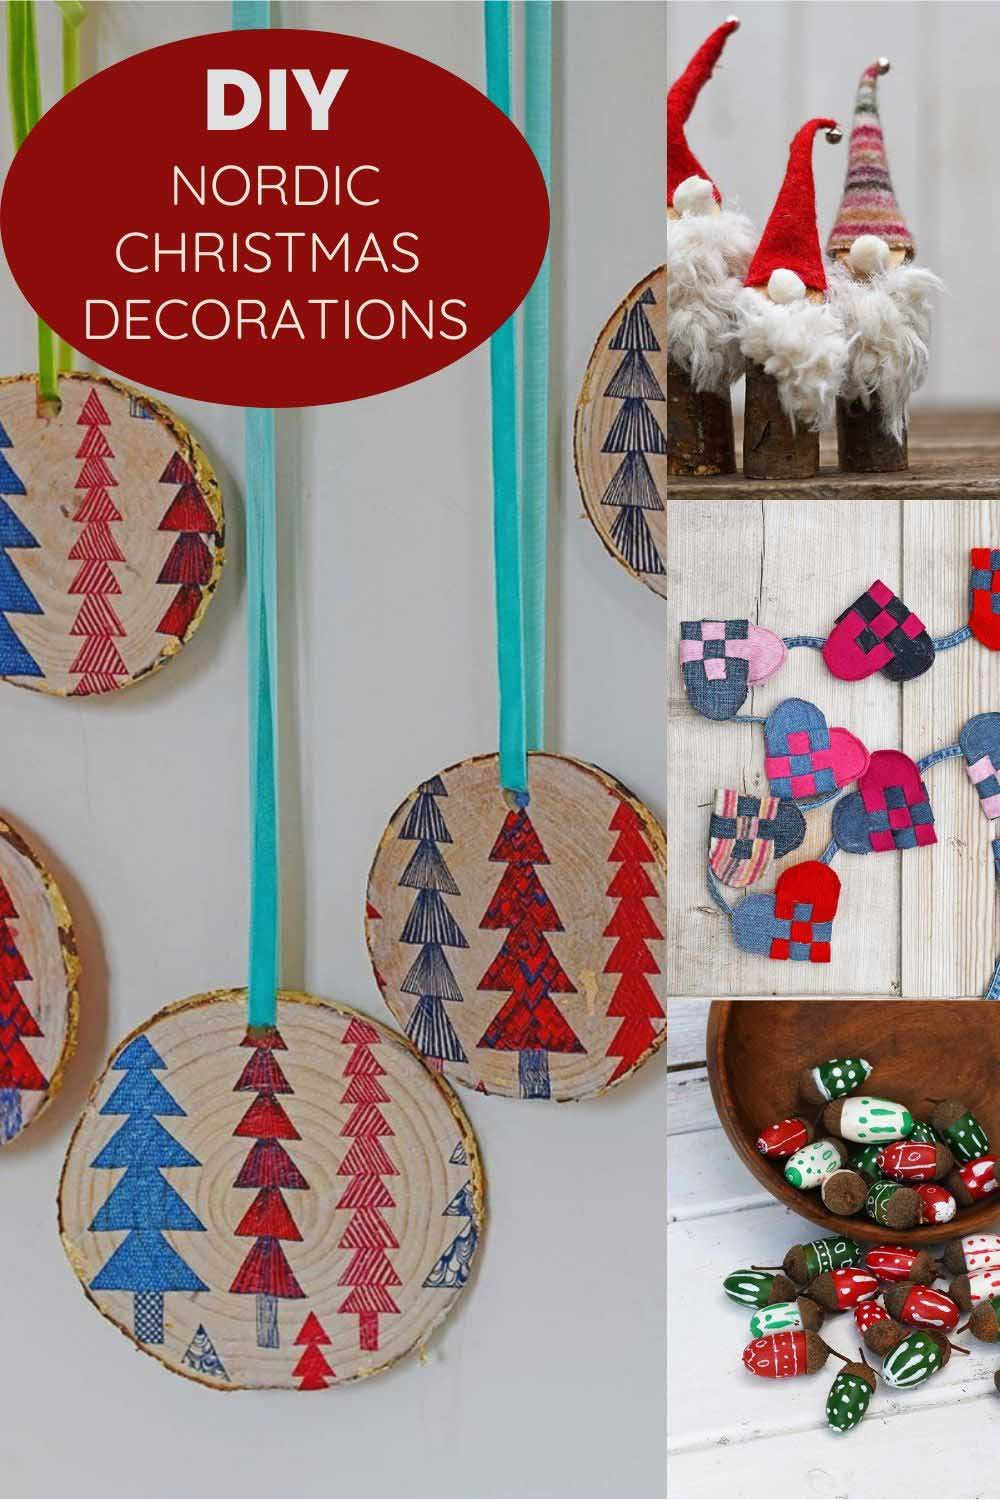 DIY Nordic Christmas crafts